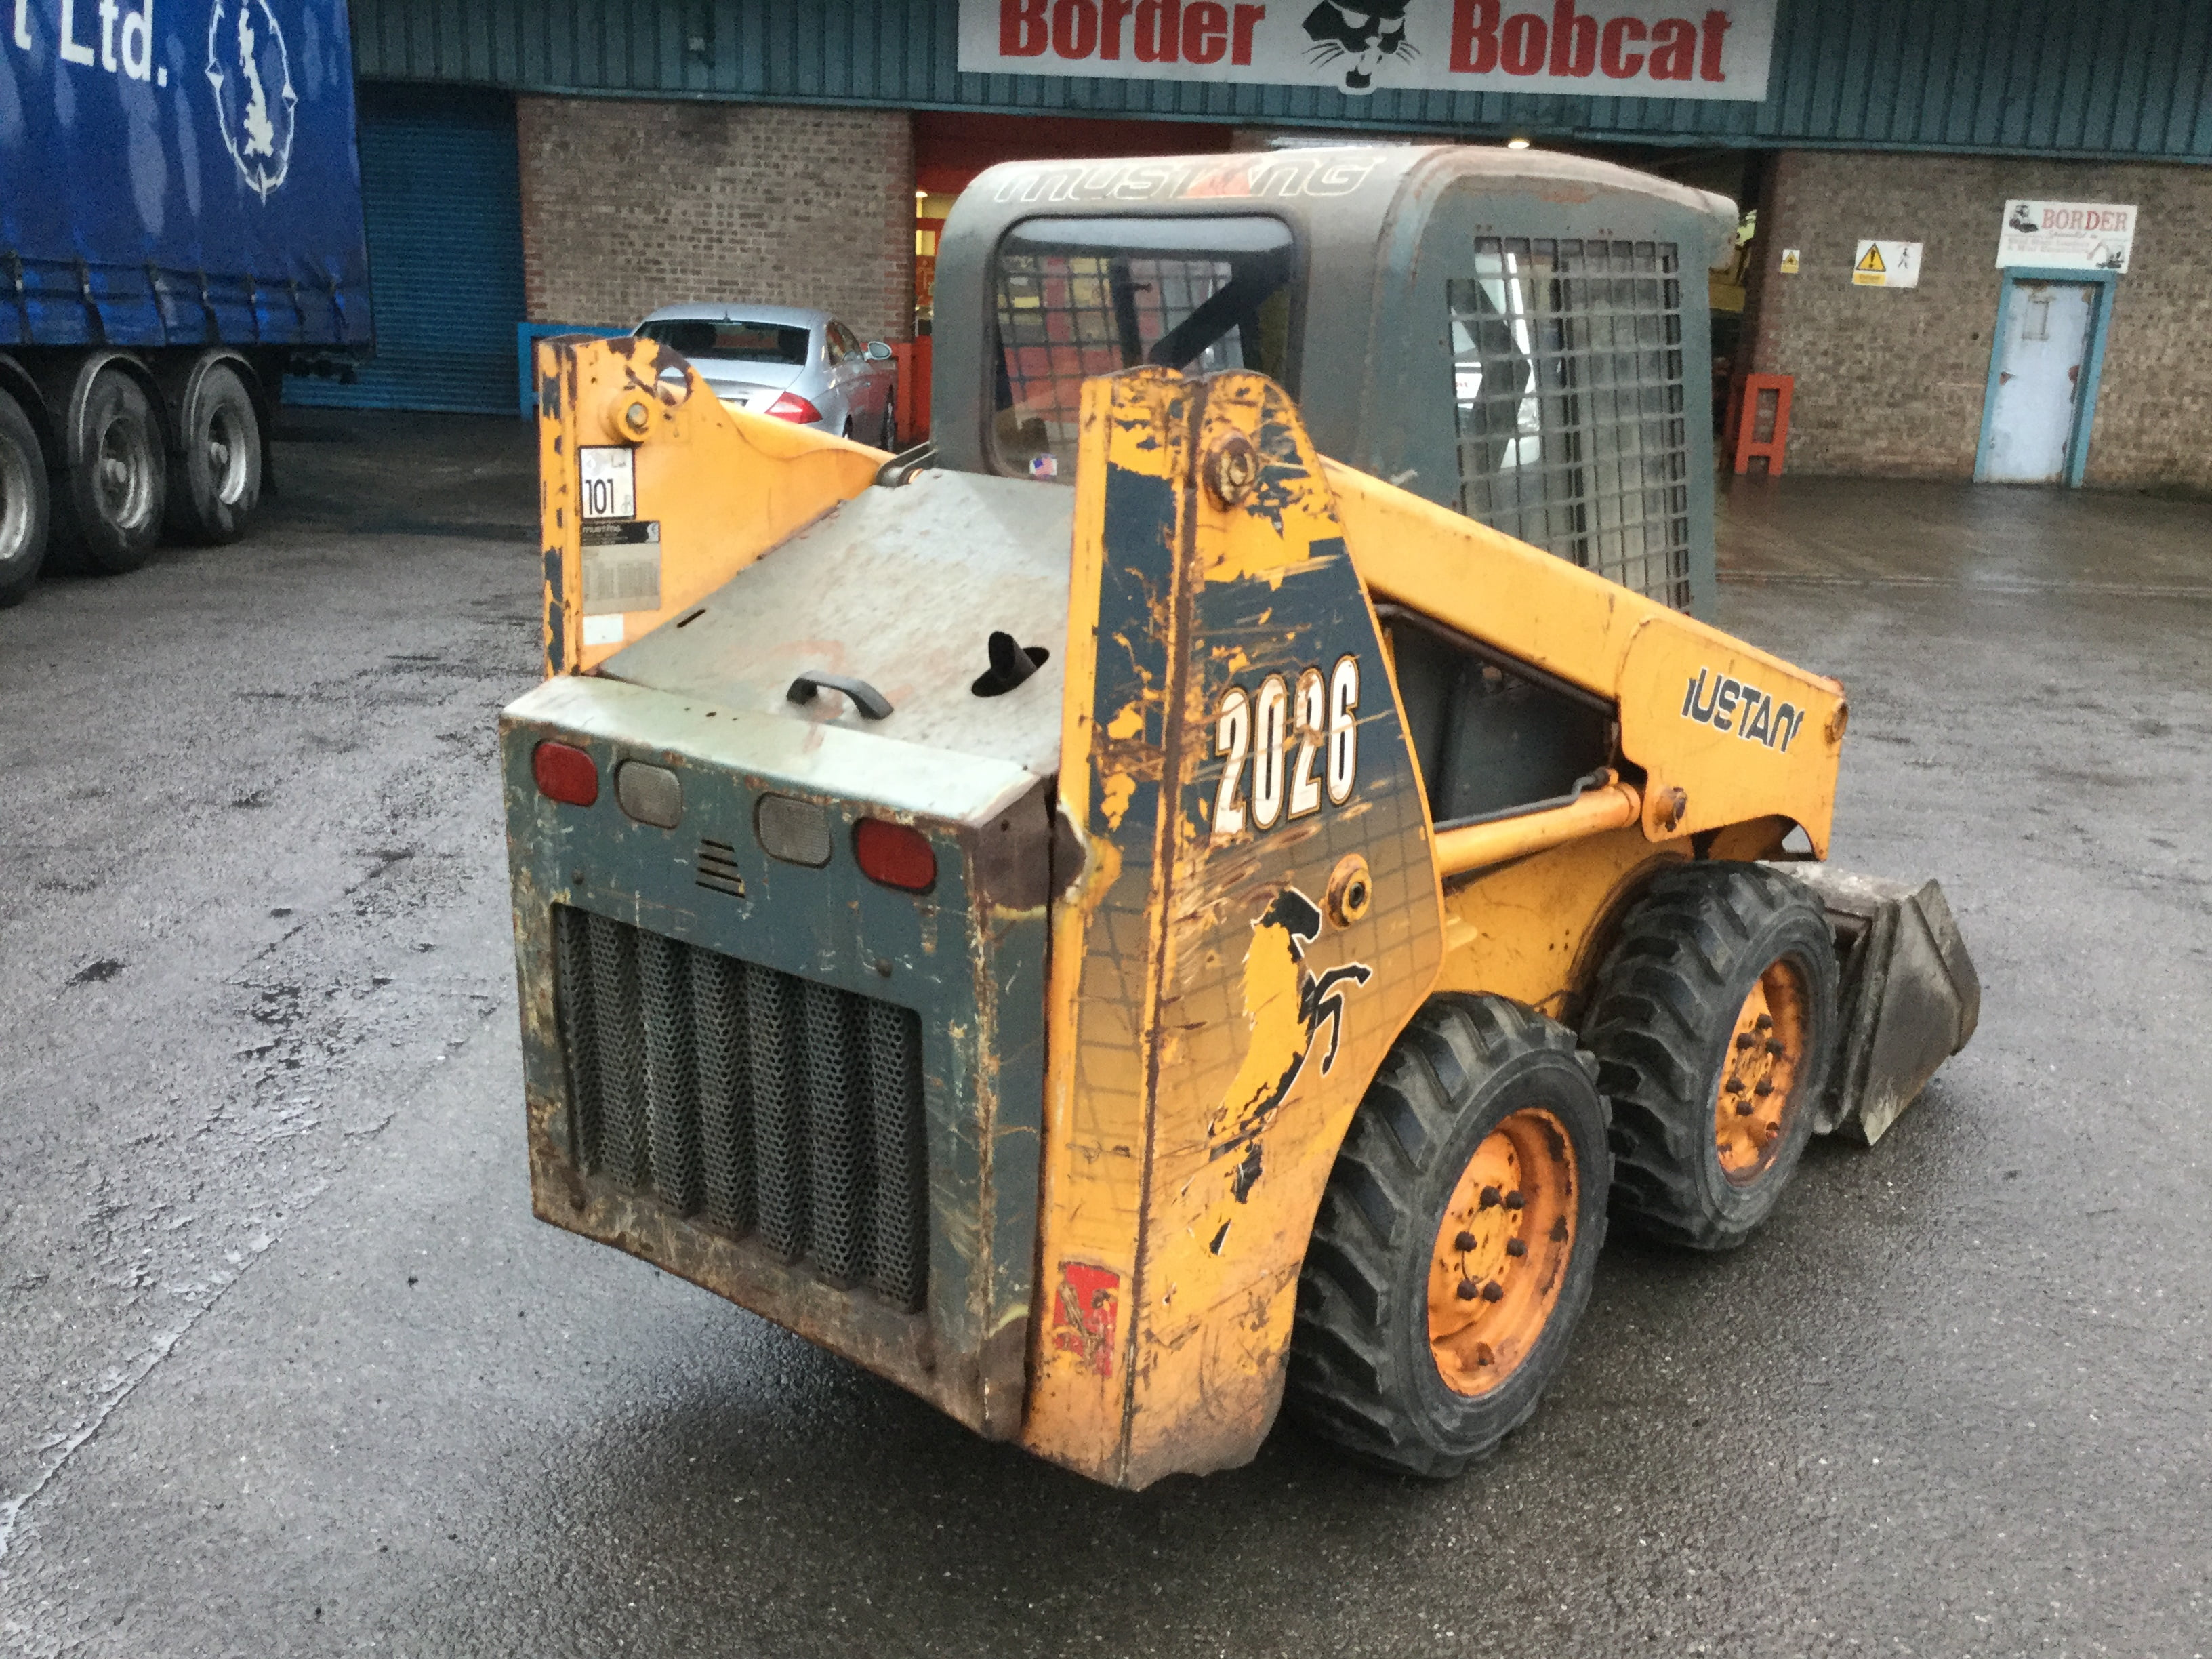 Bobcat Skid Steer >> Used Plant Archives - Border Bobcat Wales | bobcat loaders, bobcat skid loaders, bobcat skid ...